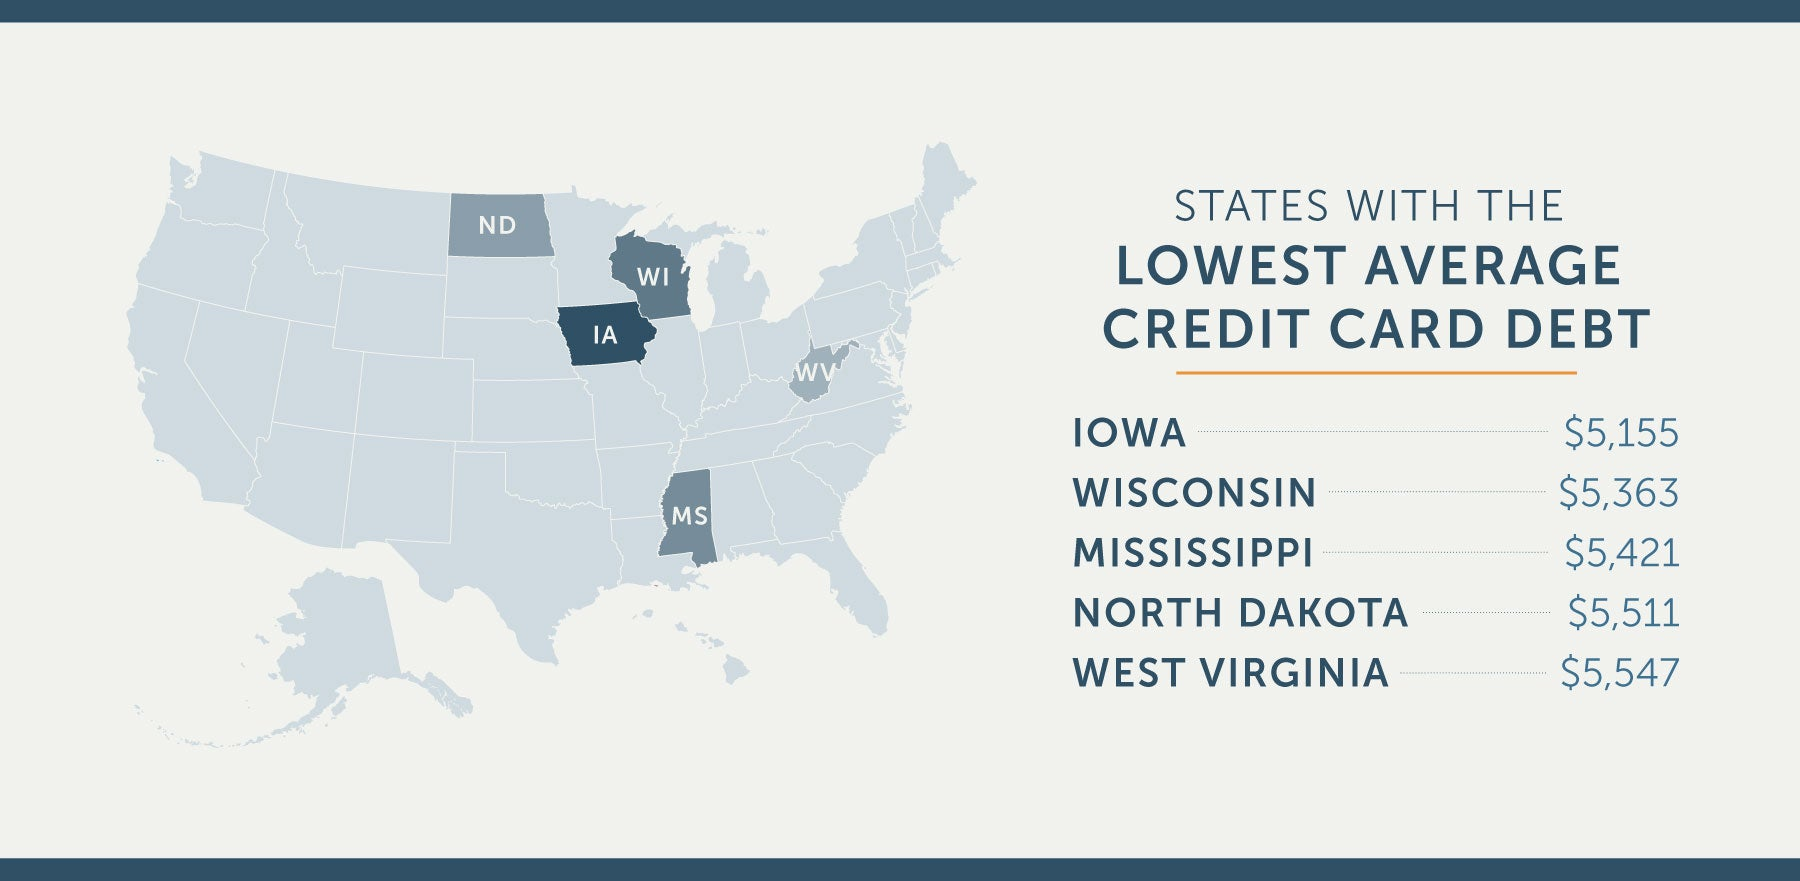 states with the lowest average credit card debt